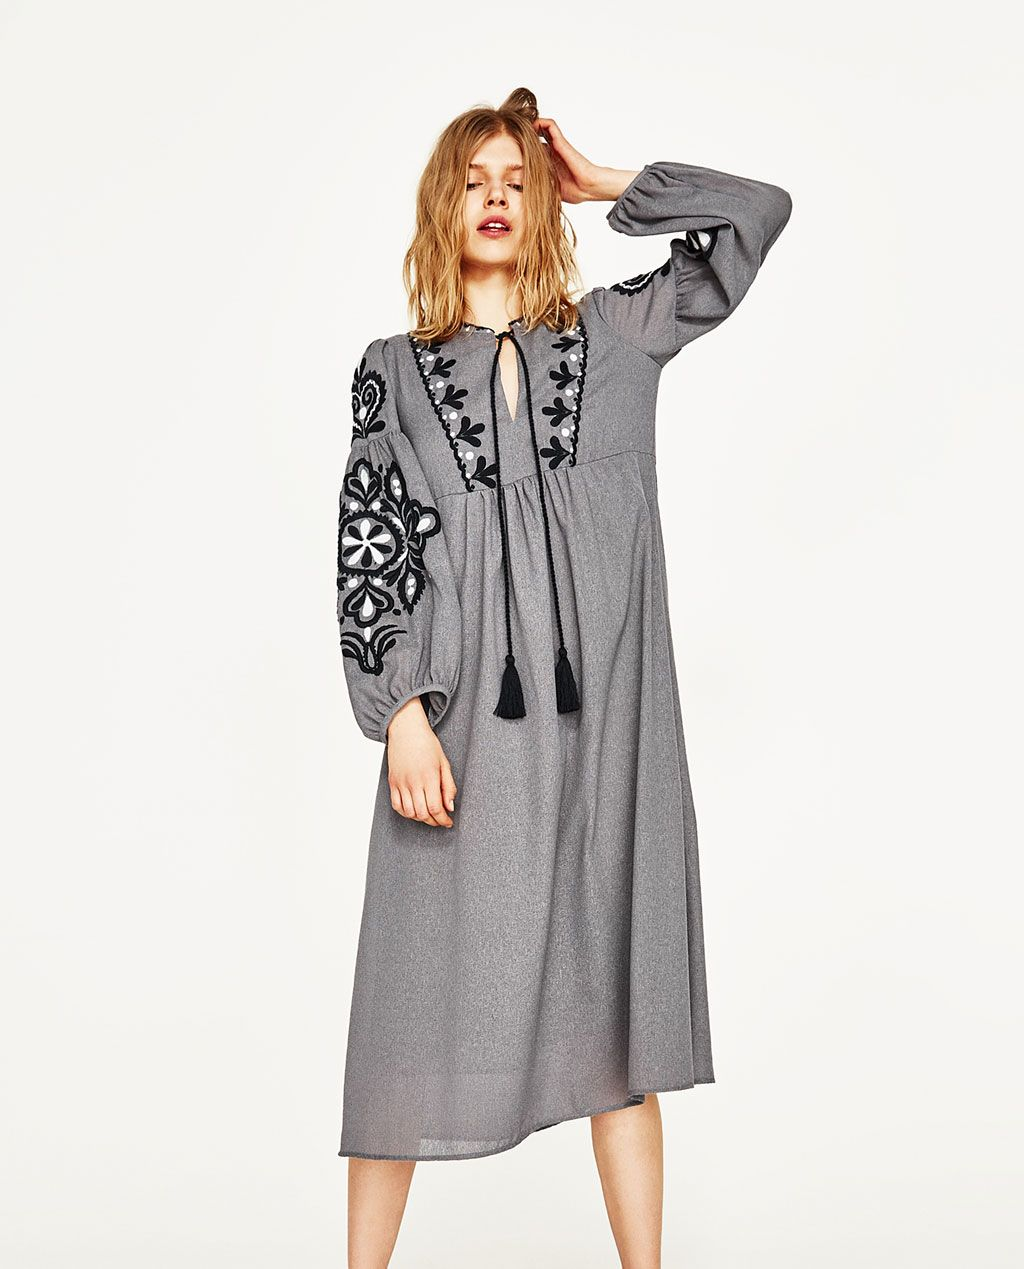 ... Zara - LONG EMBROIDERED DRESS WITH TASSELS - 1